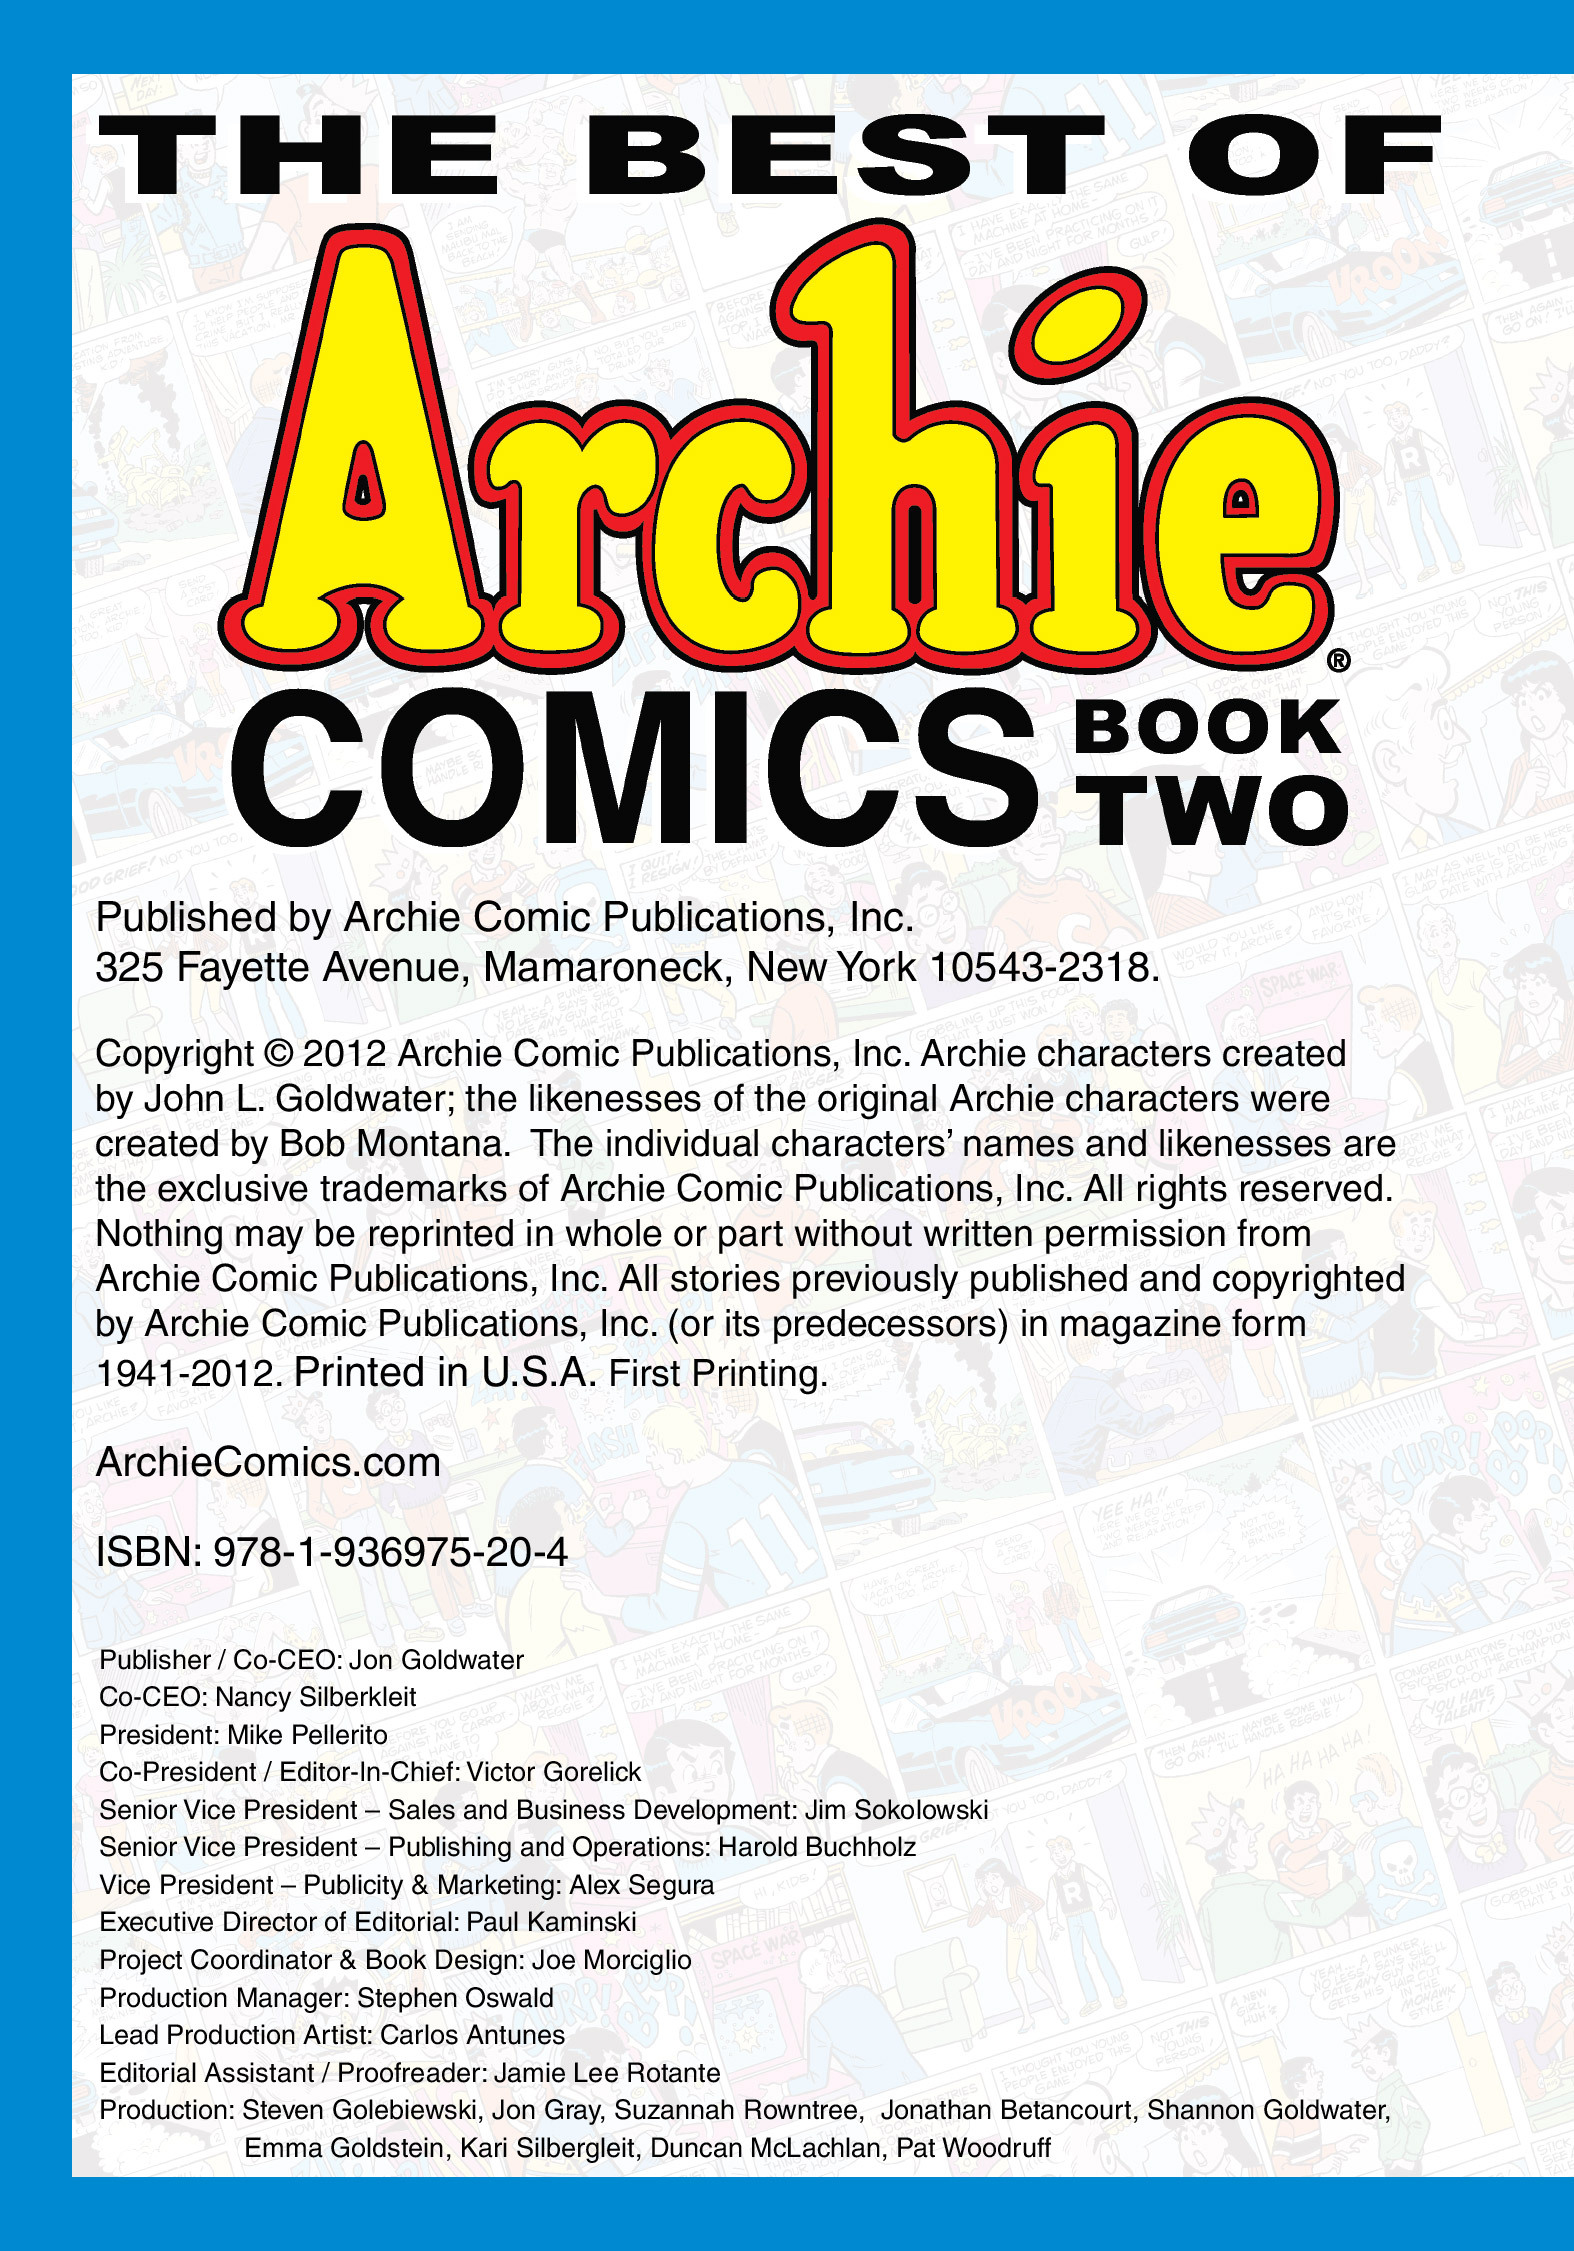 Read online The Best of Archie Comics comic -  Issue # TPB 2 (Part 1) - 4